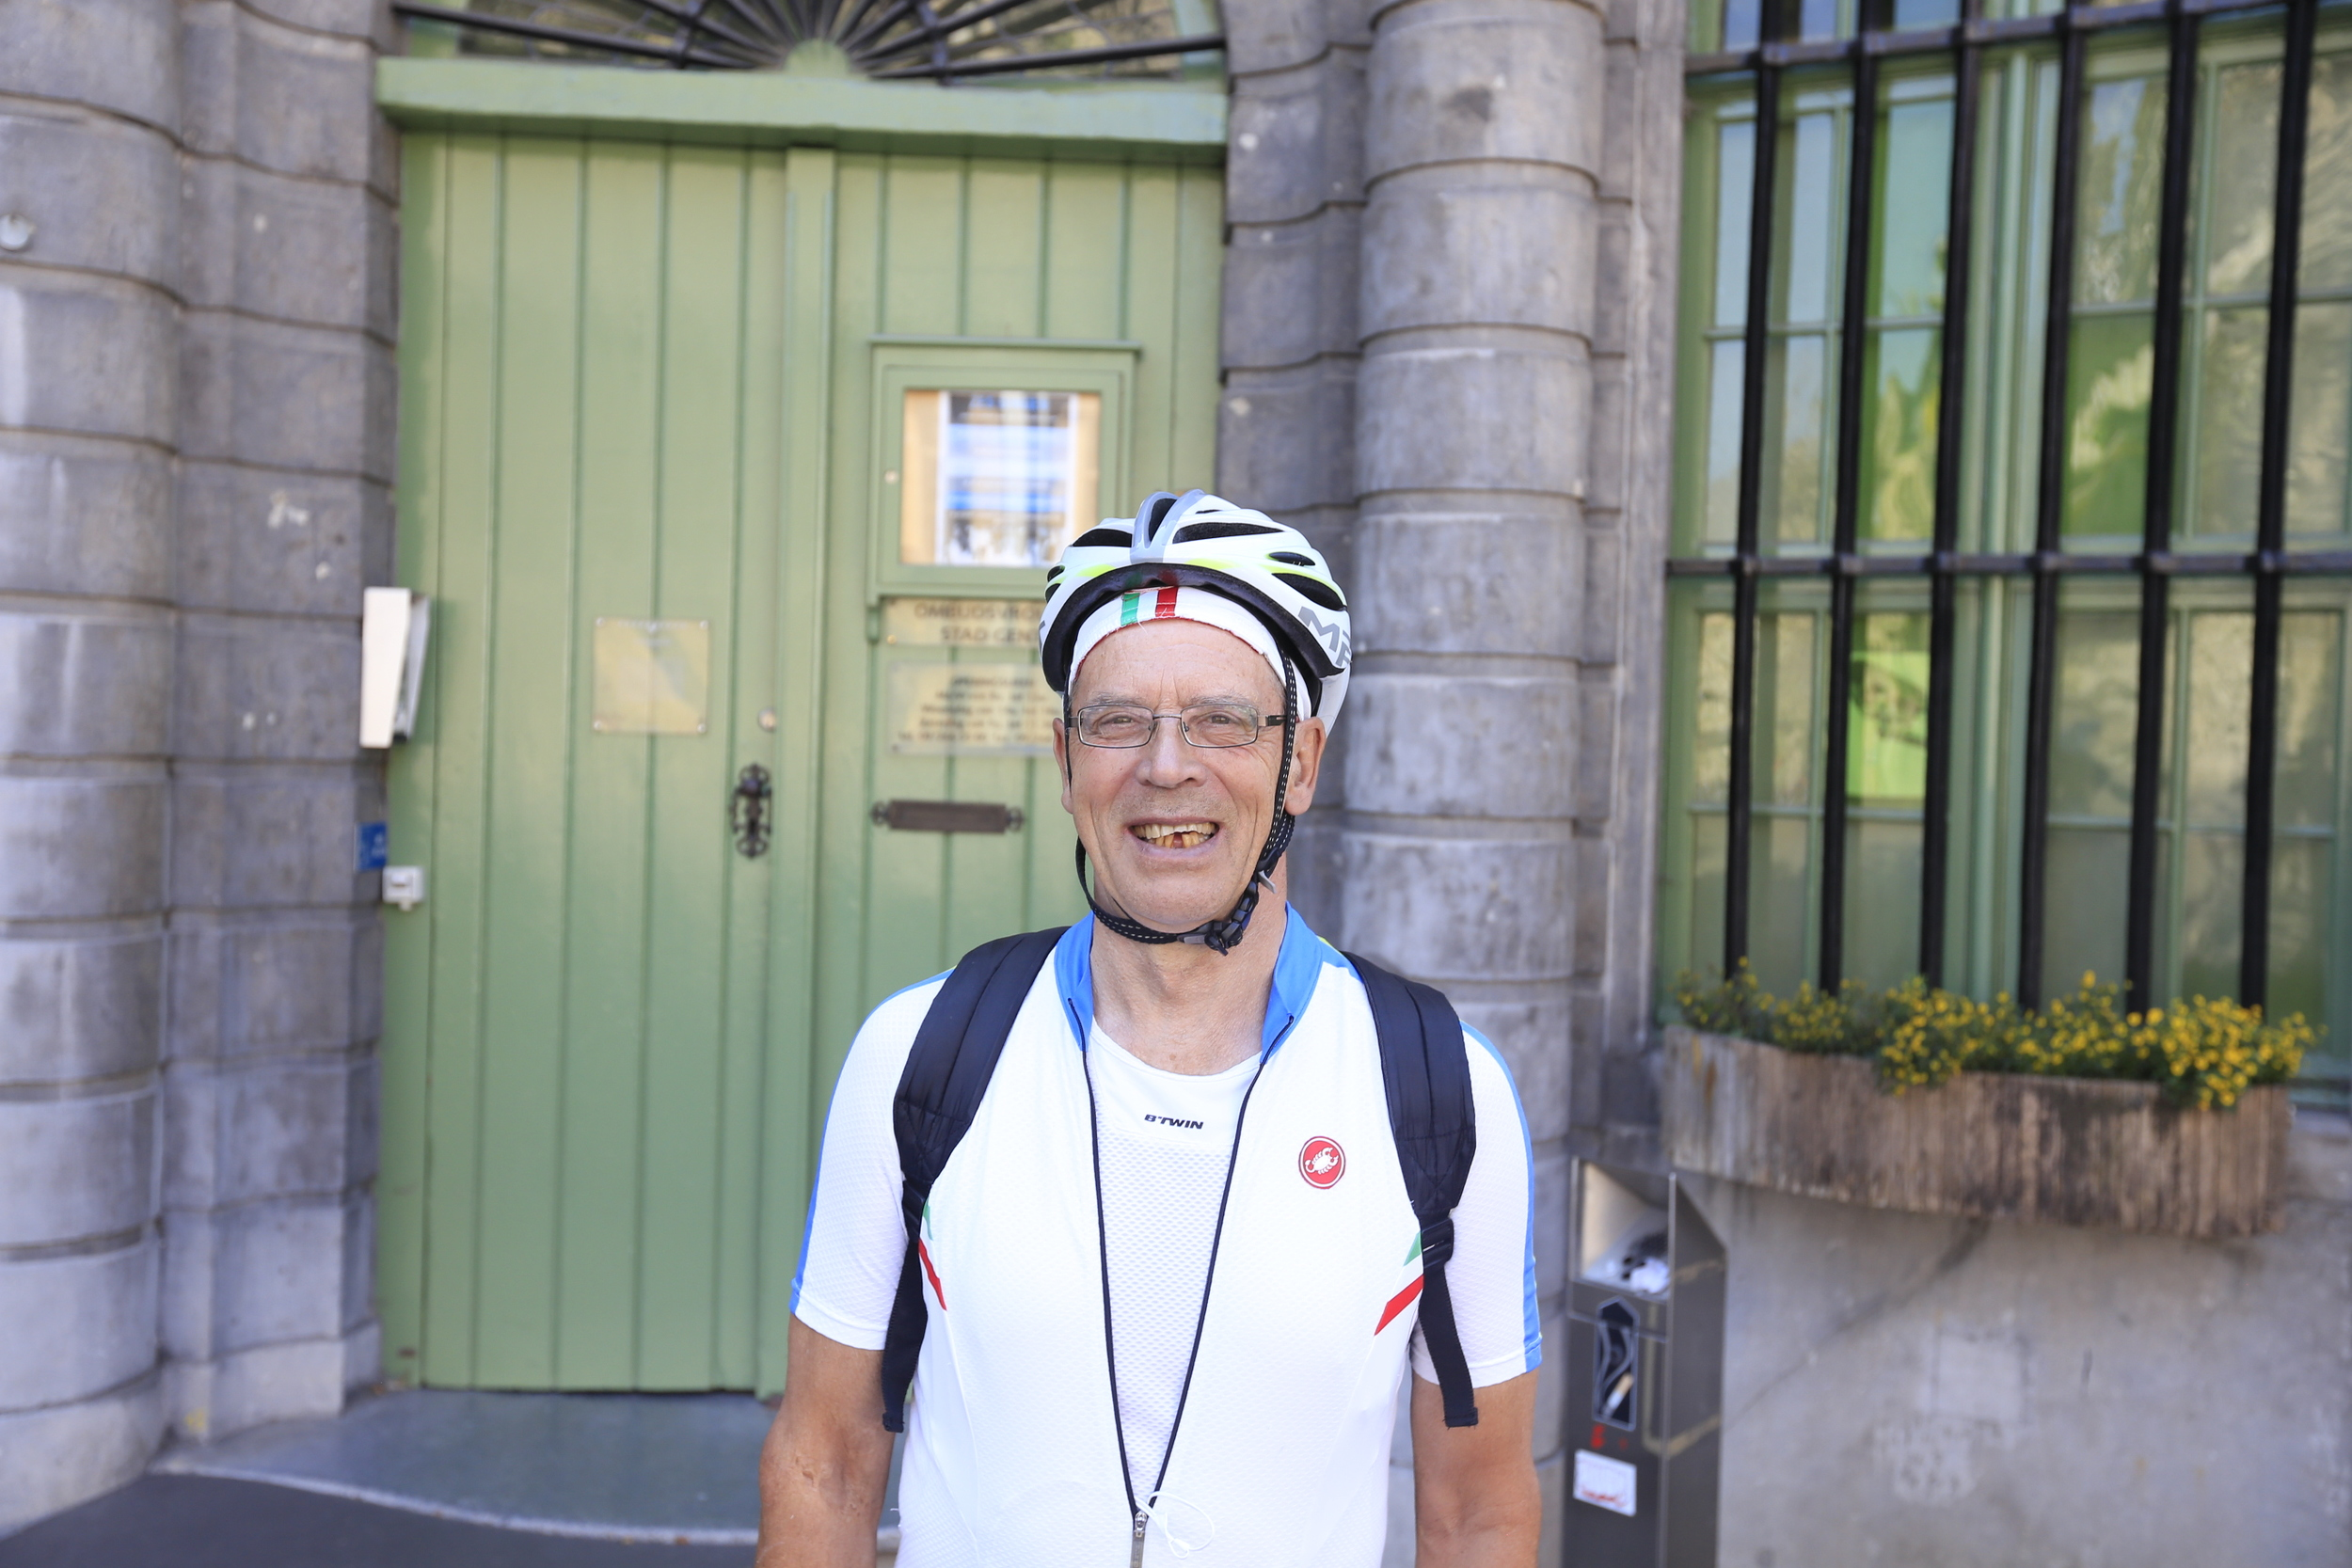 This lovely gentleman approached me, complimented my camera and told me the story of an inmate who survived his prison sentence in Ghent by suckling off a woman's breast. Touching stuff.